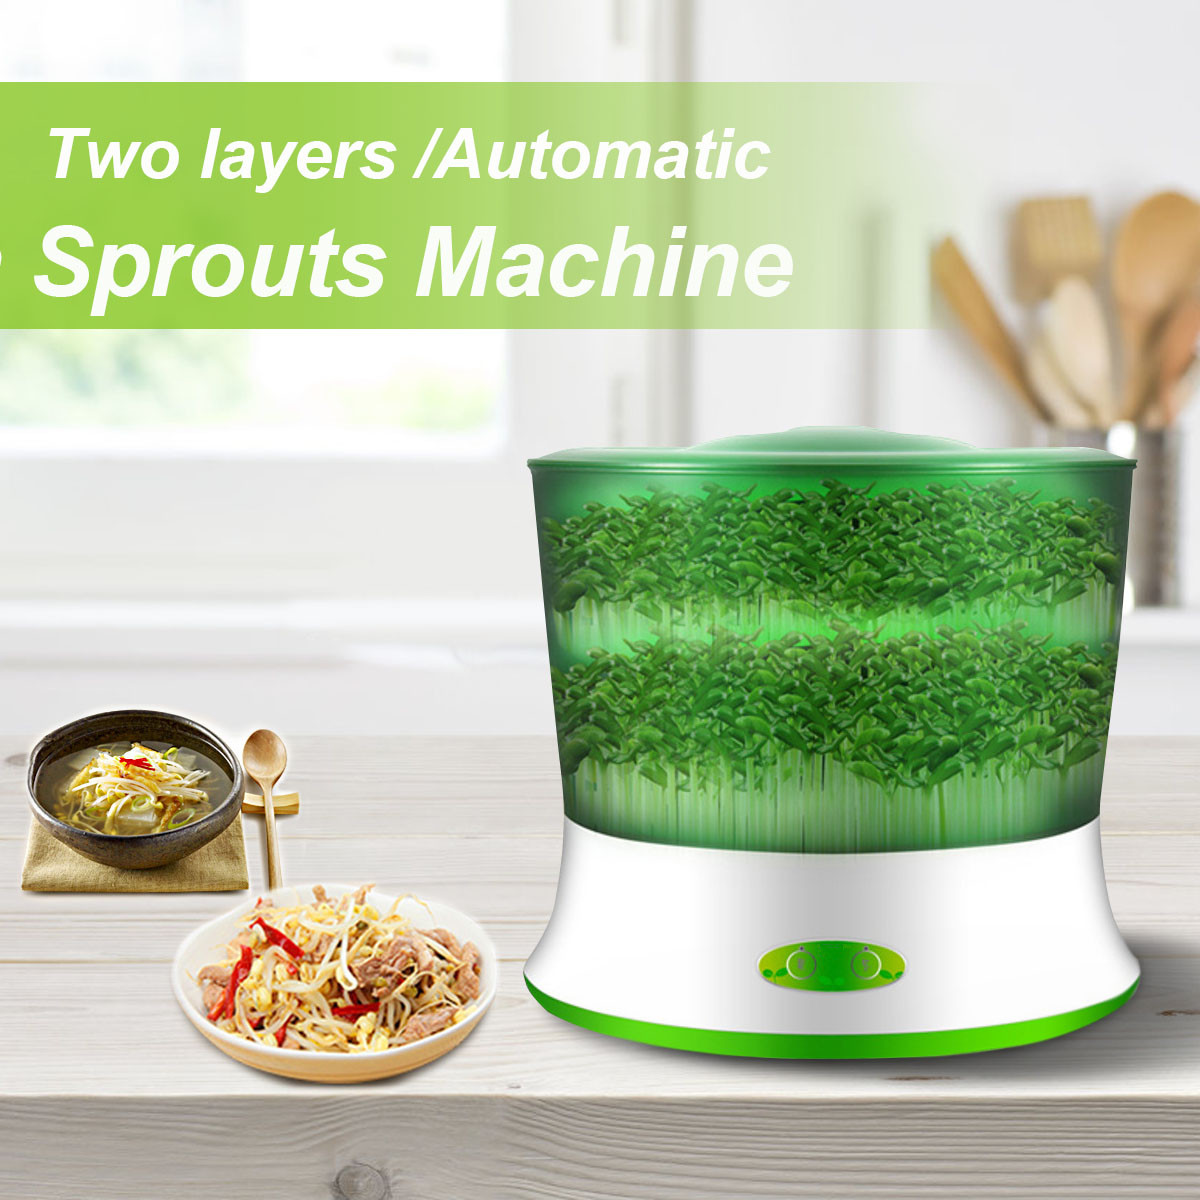 220V 20W Intelligent Bean Sprouts Maker Household Upgrade Large Capacity Thermostat Green Seeds Growing Automatic Sprout Machine household automatic multi bean sprout machine rice wine yogurt maker machine large capacity thermostat seeds growing machine